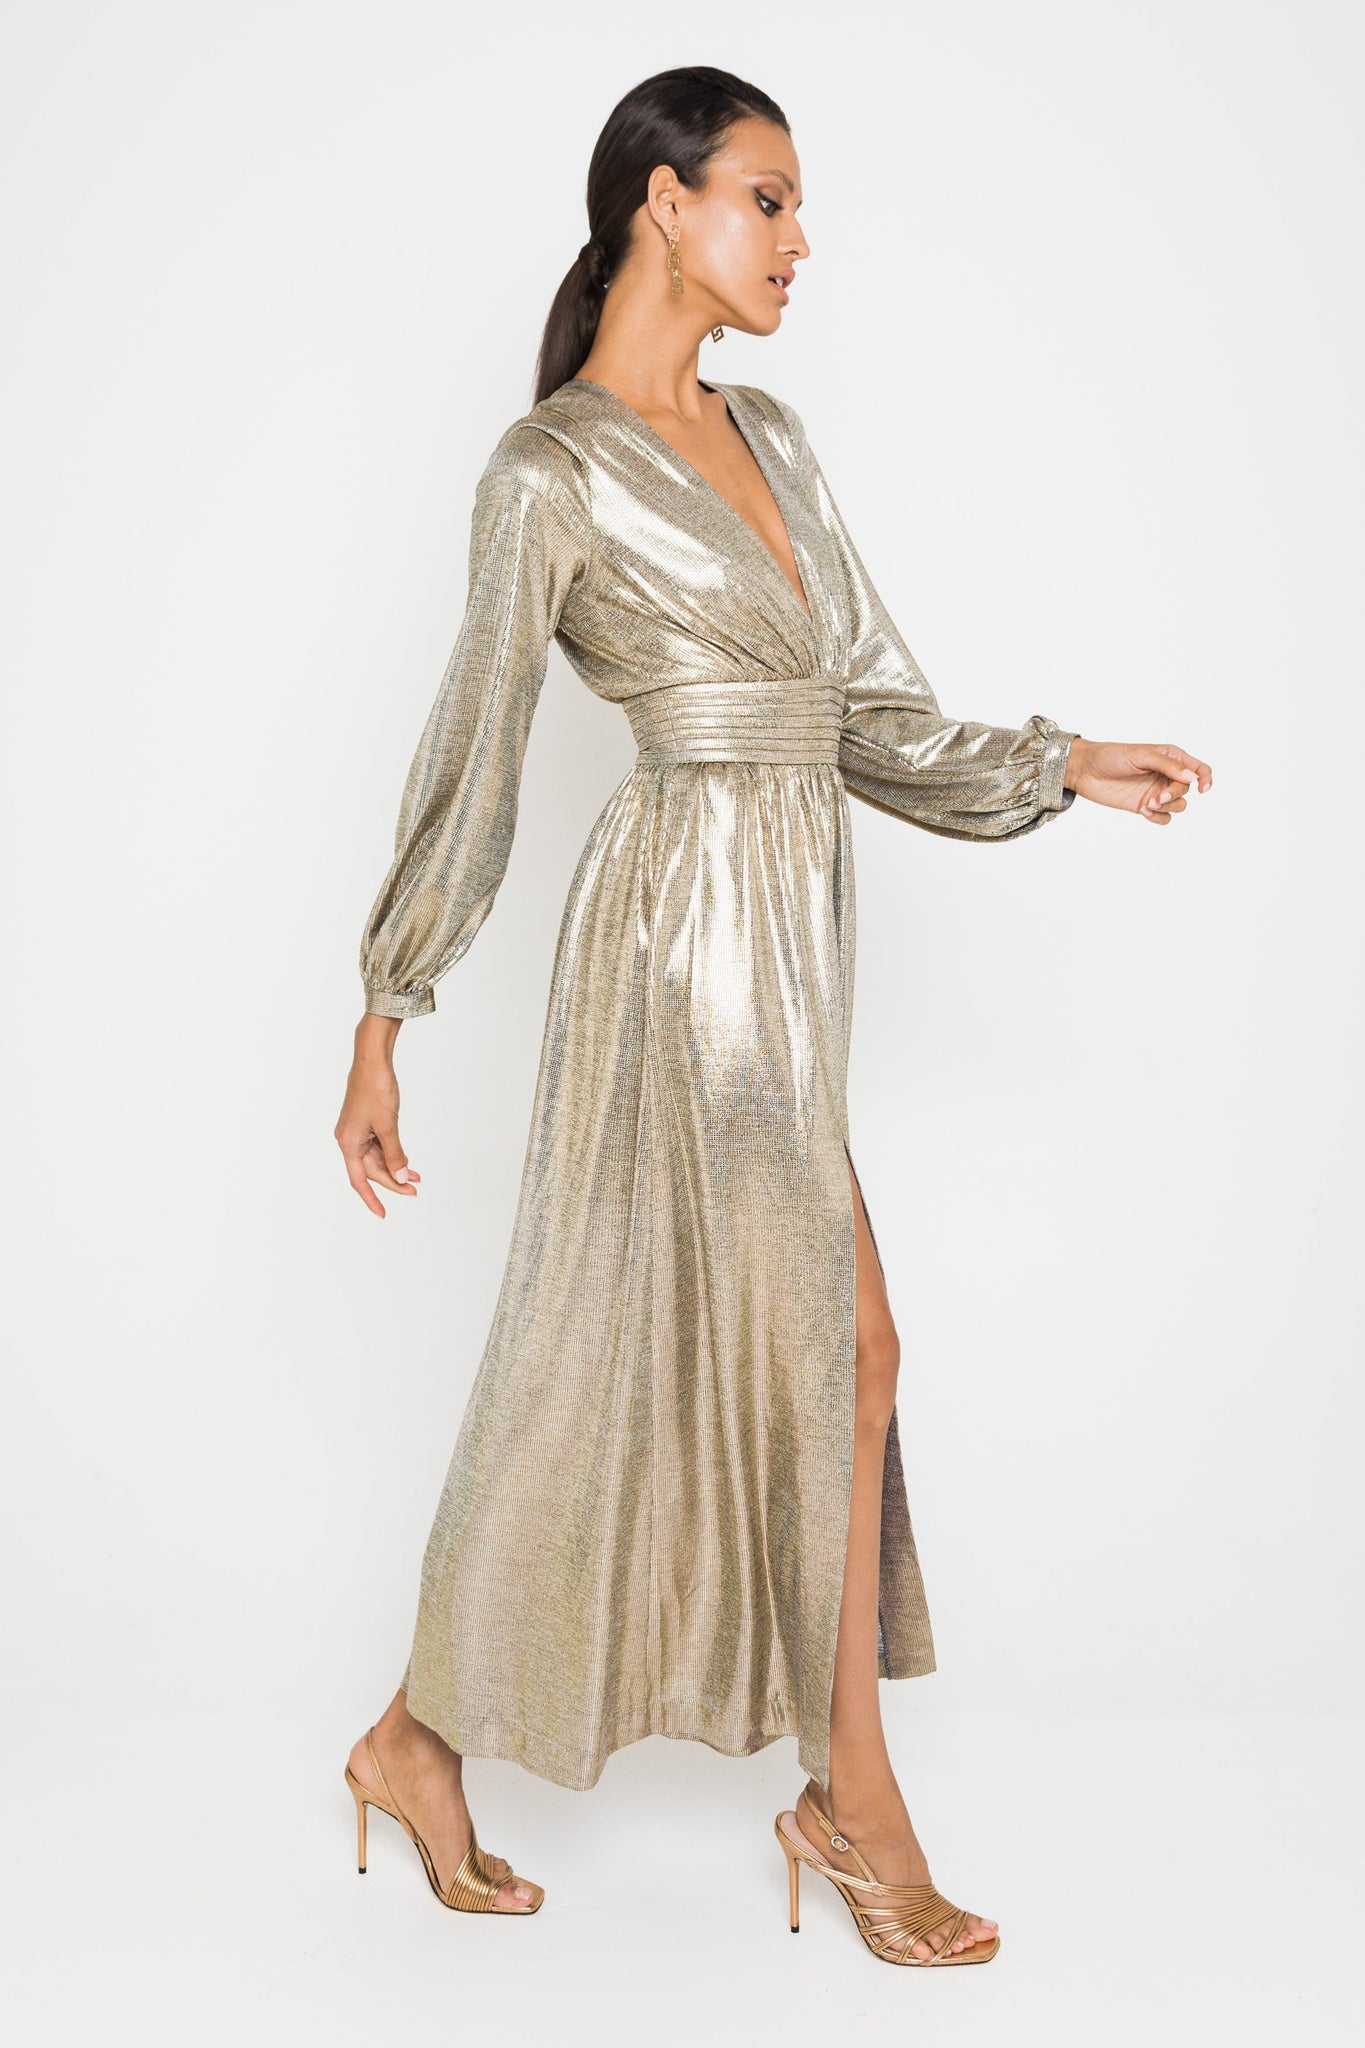 The Golden Era Dress